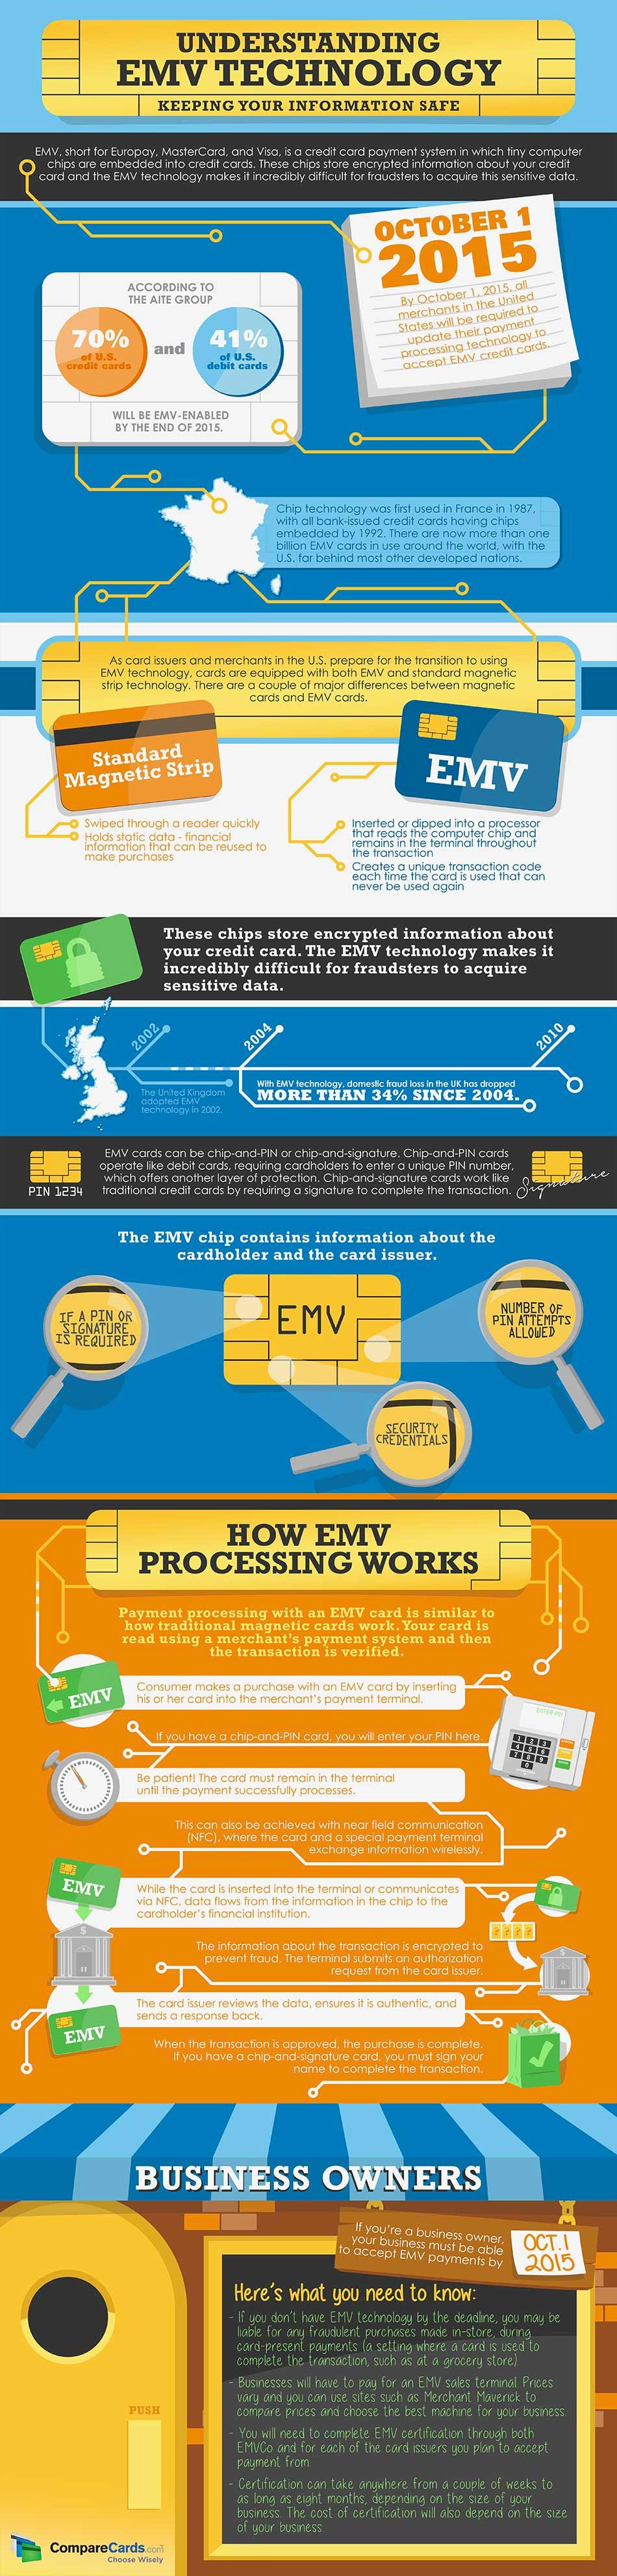 Say hello to emv the technology that makes credit cards safer say hello to emv the technology that makes credit cards safer infographic colourmoves